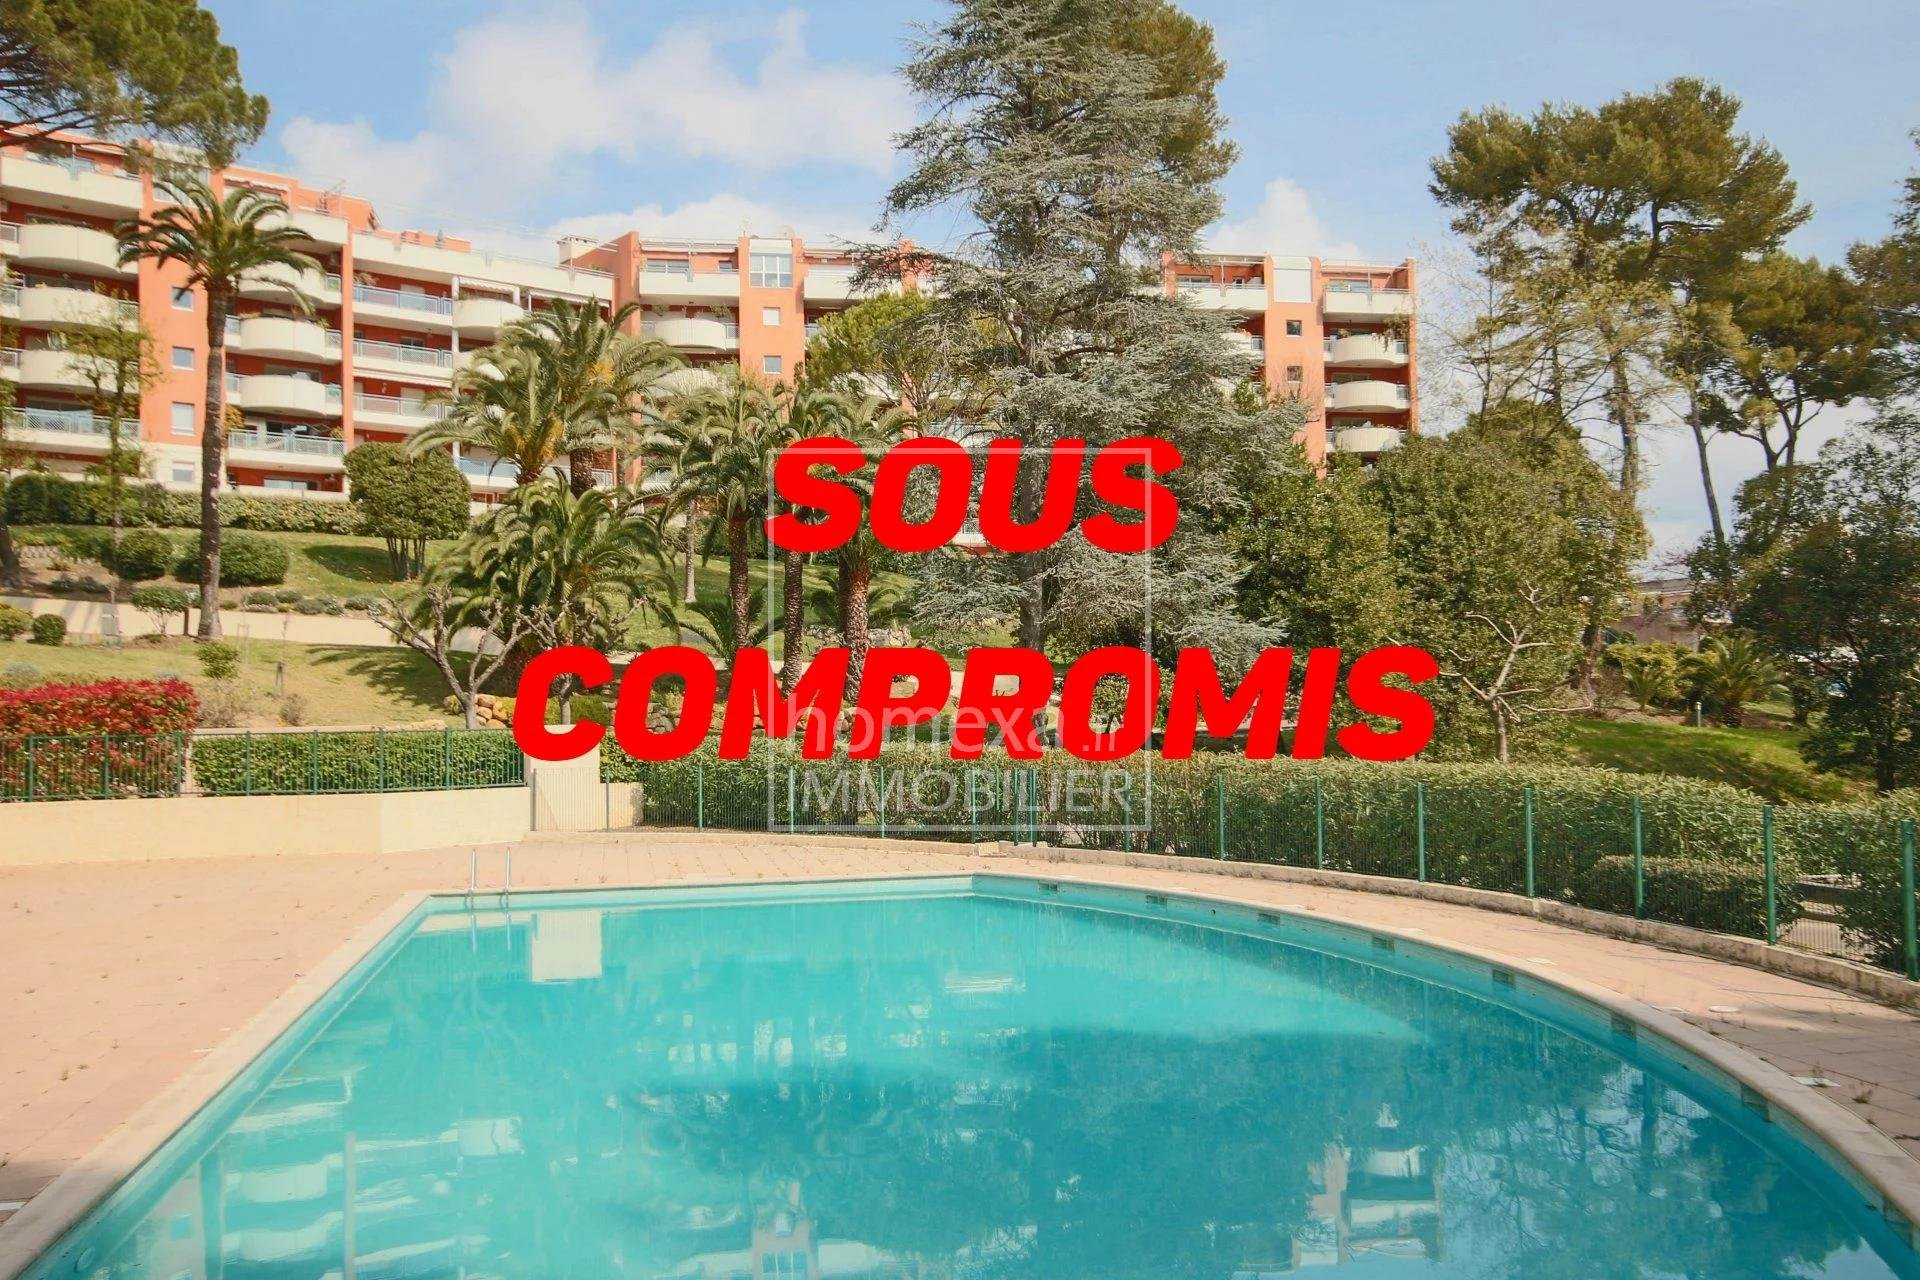 Real estate Cannes : High end residence with pool, tennis court and pitch and put golf